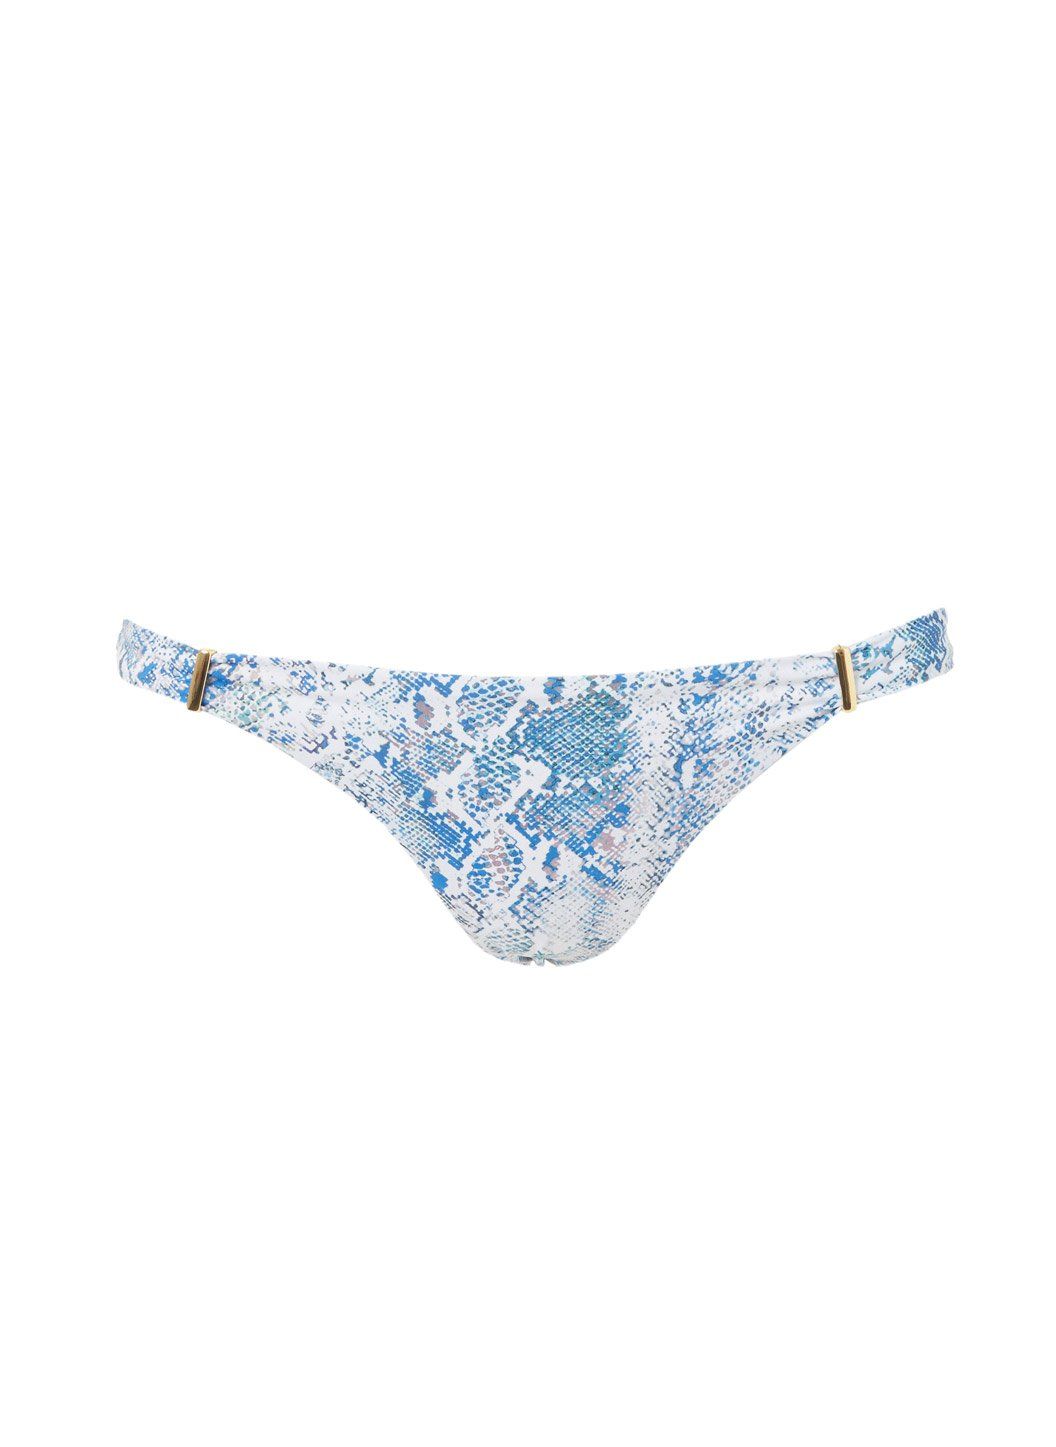 Martinique Serpente Hipster Bikini Bottom